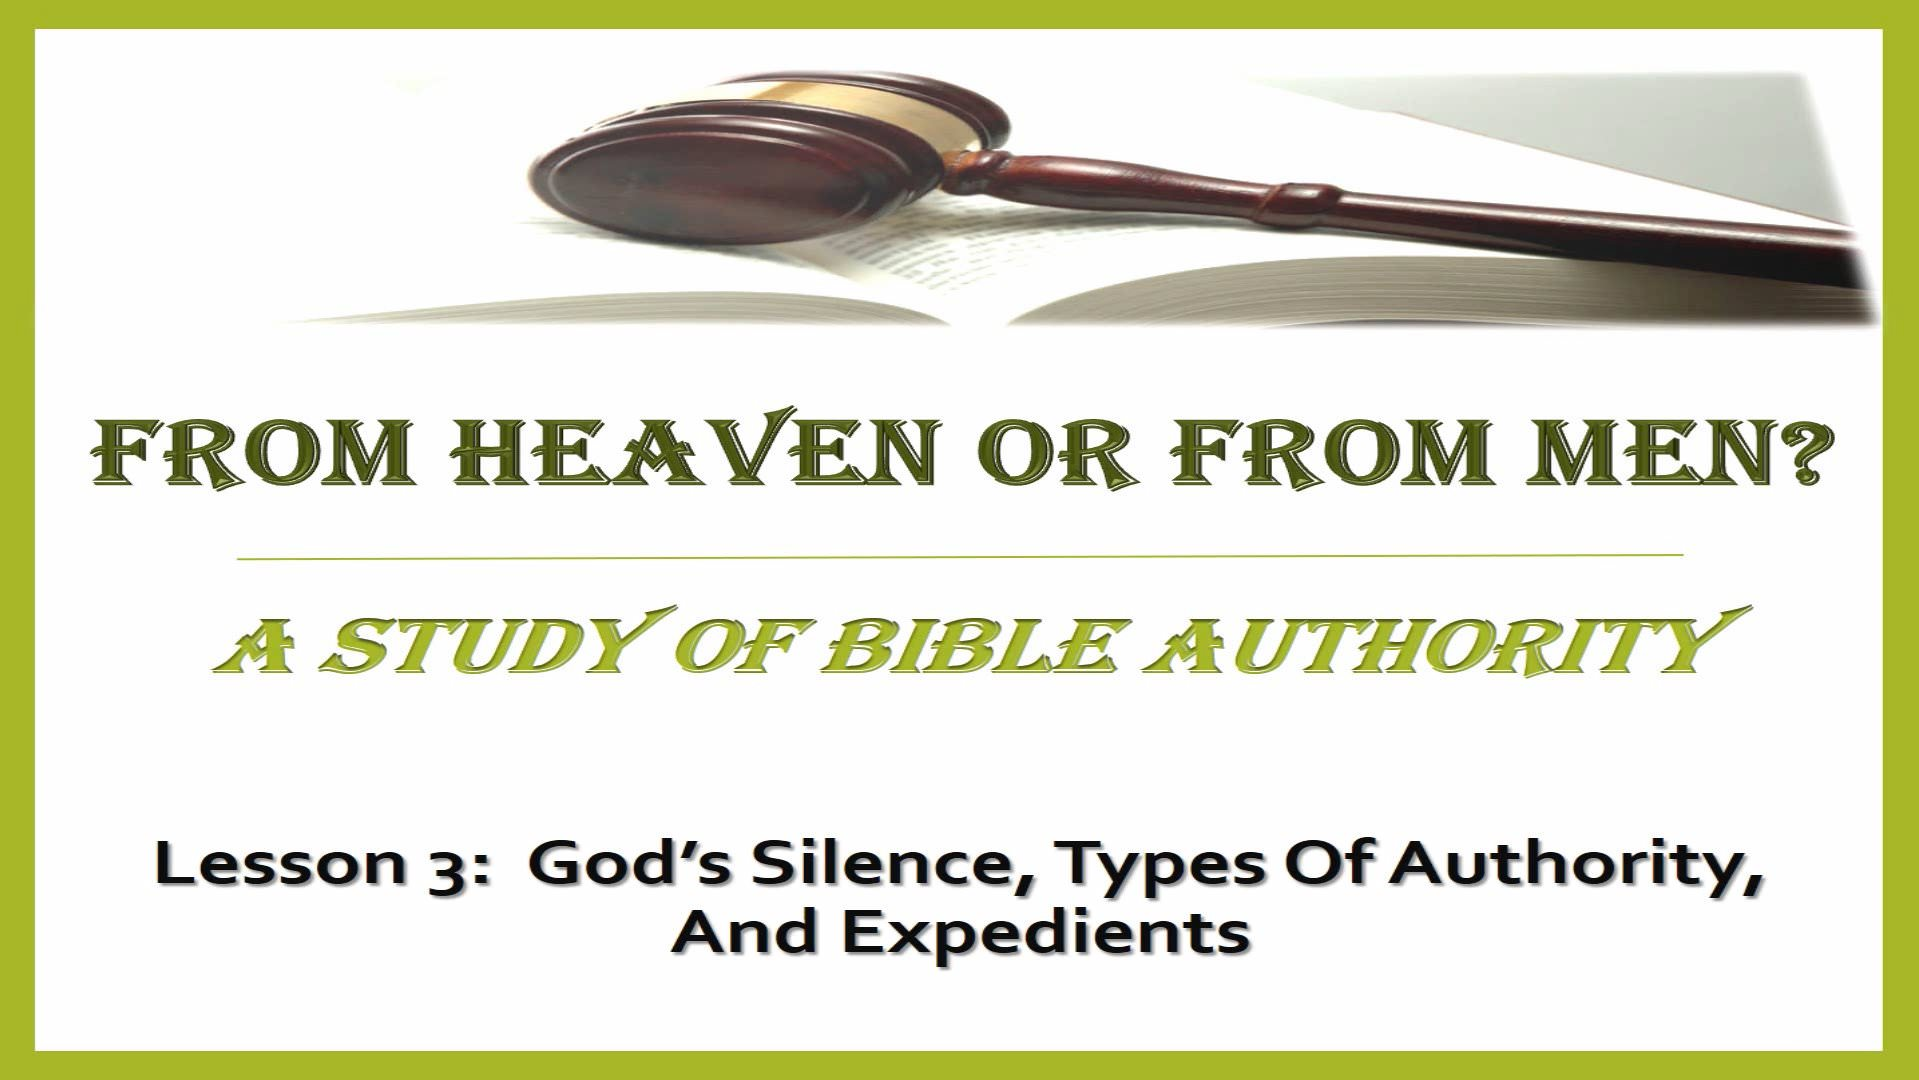 From Heaven Or From Men? (Lesson 3:  God's Silence, Types Of Authority, And Expedients)